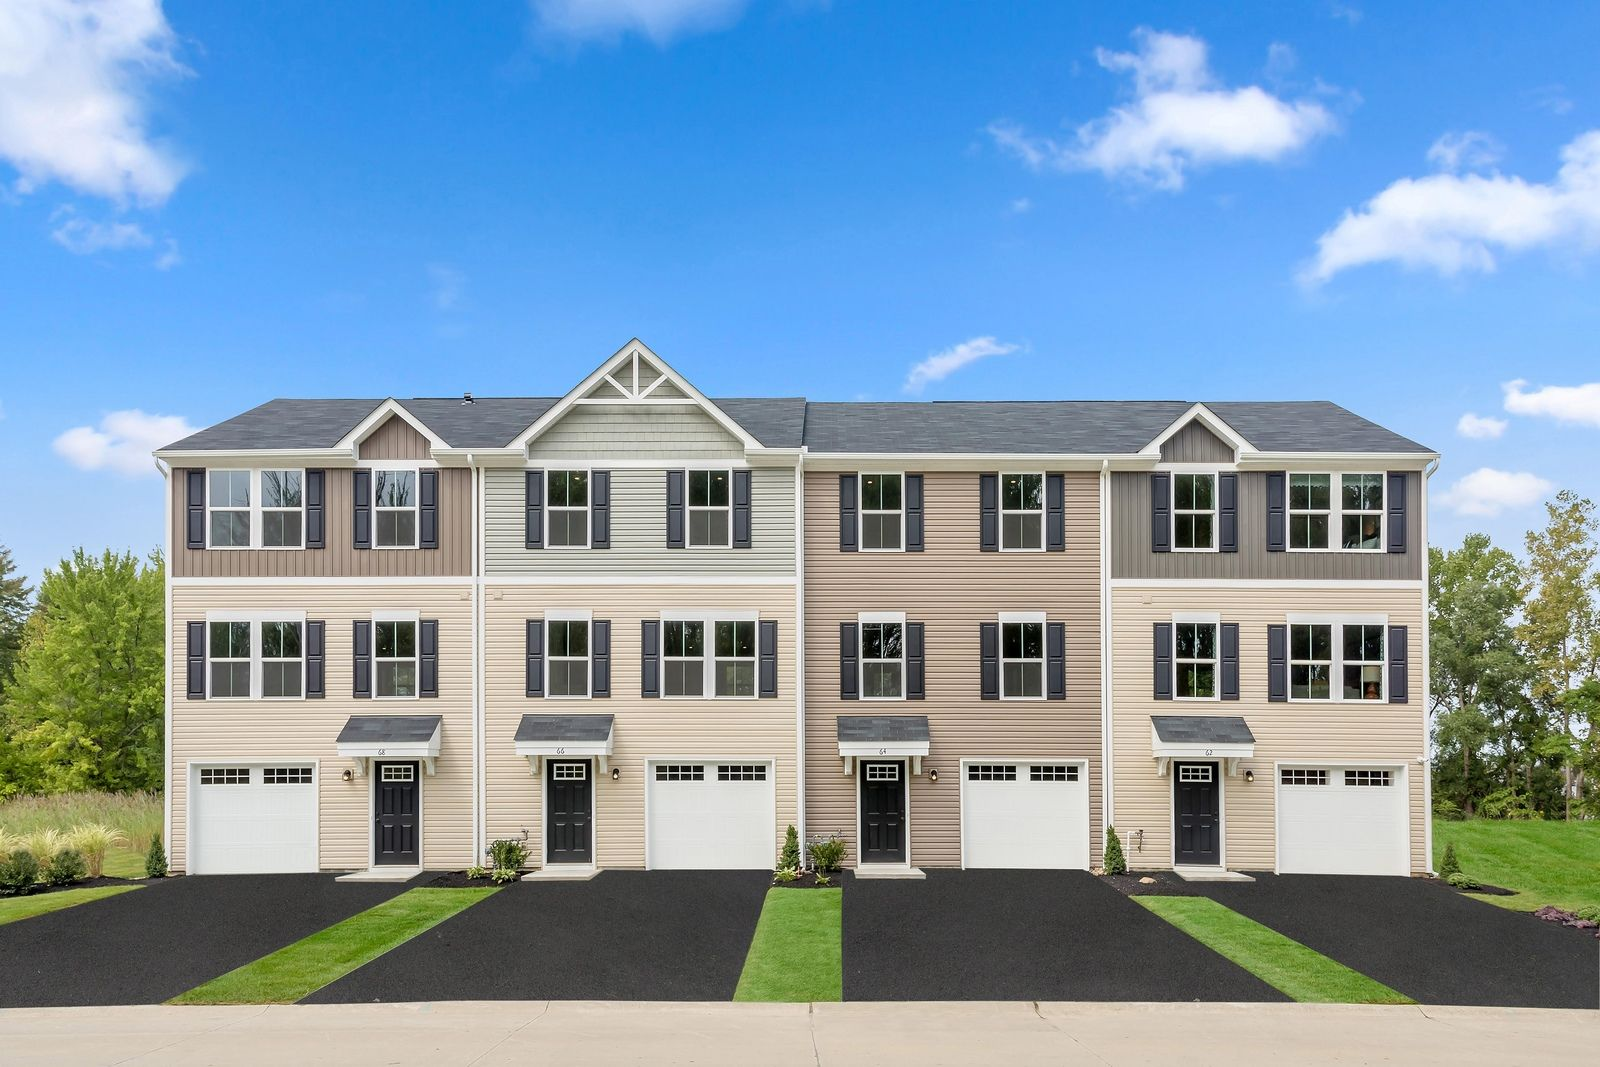 WELCOME TO HYETTS CORNER:Lowest priced new townhomes coming soon to Middletown, just minutes from routes 1 and 13, shopping and dining, from upper $200s.Click here to join the VIP list for the first chance to buy a new home.